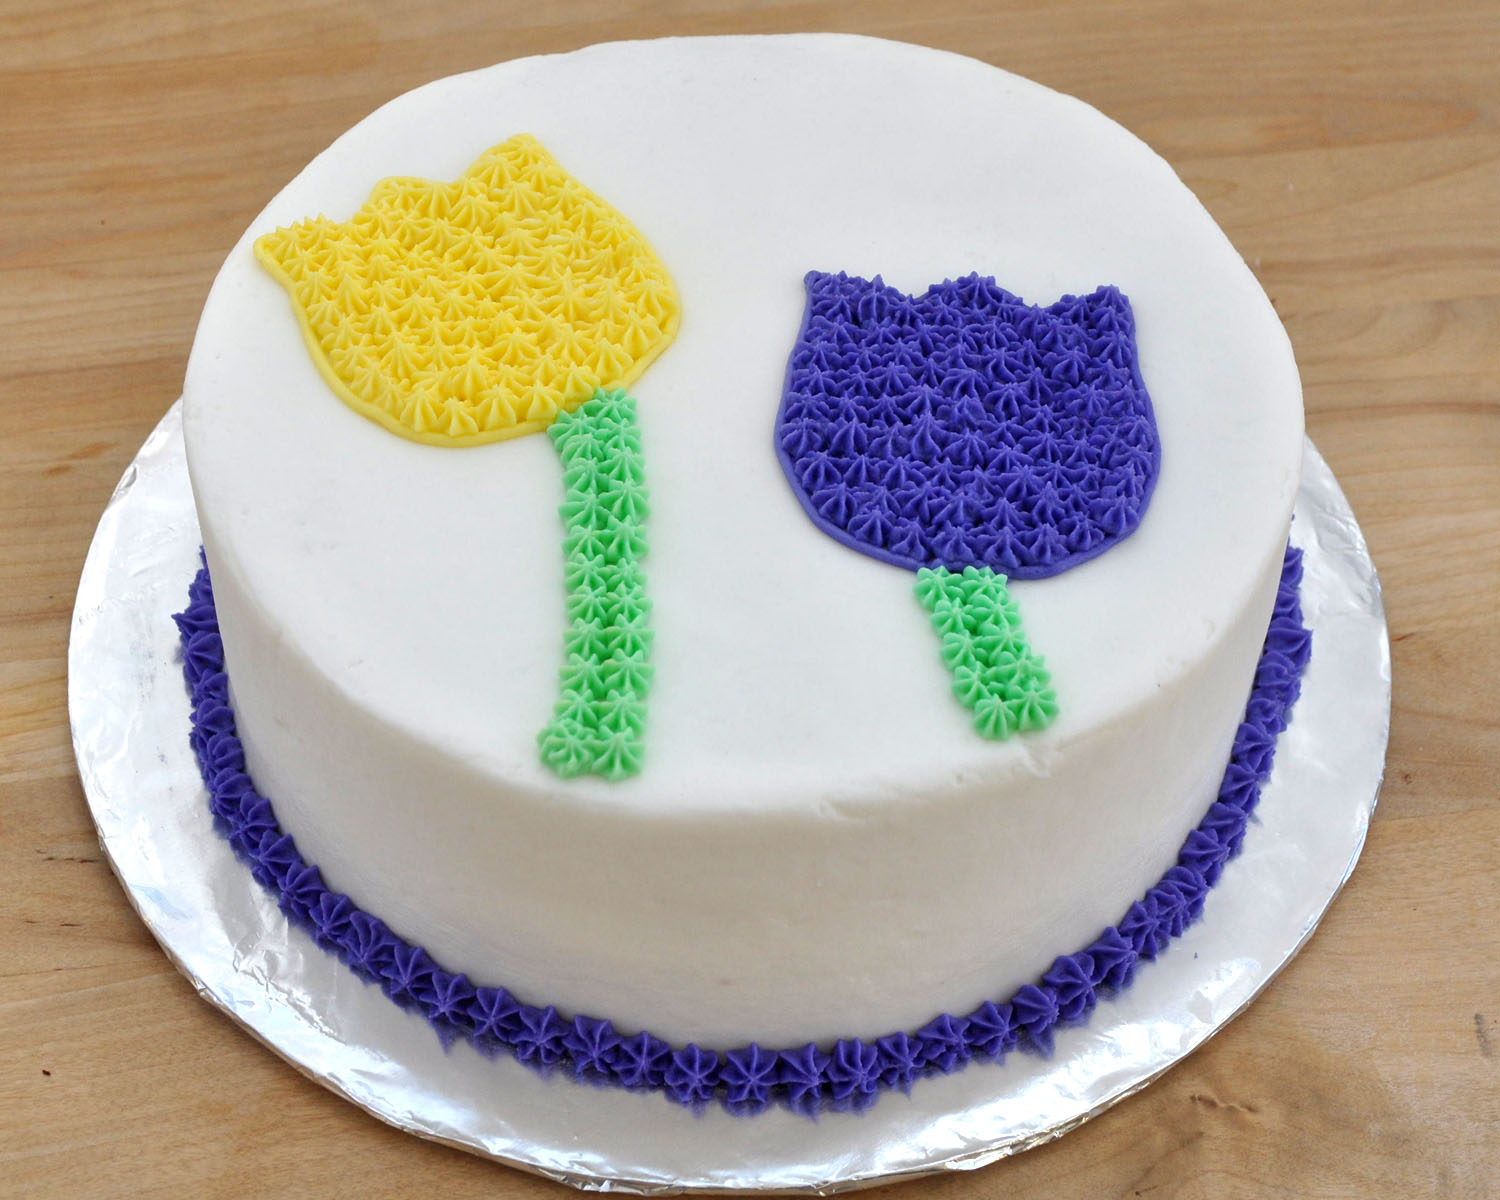 Simple Decoration Ideas For Cake : Beki Cook s Cake Blog: Cake Decorating 101 - Easy Birthday ...